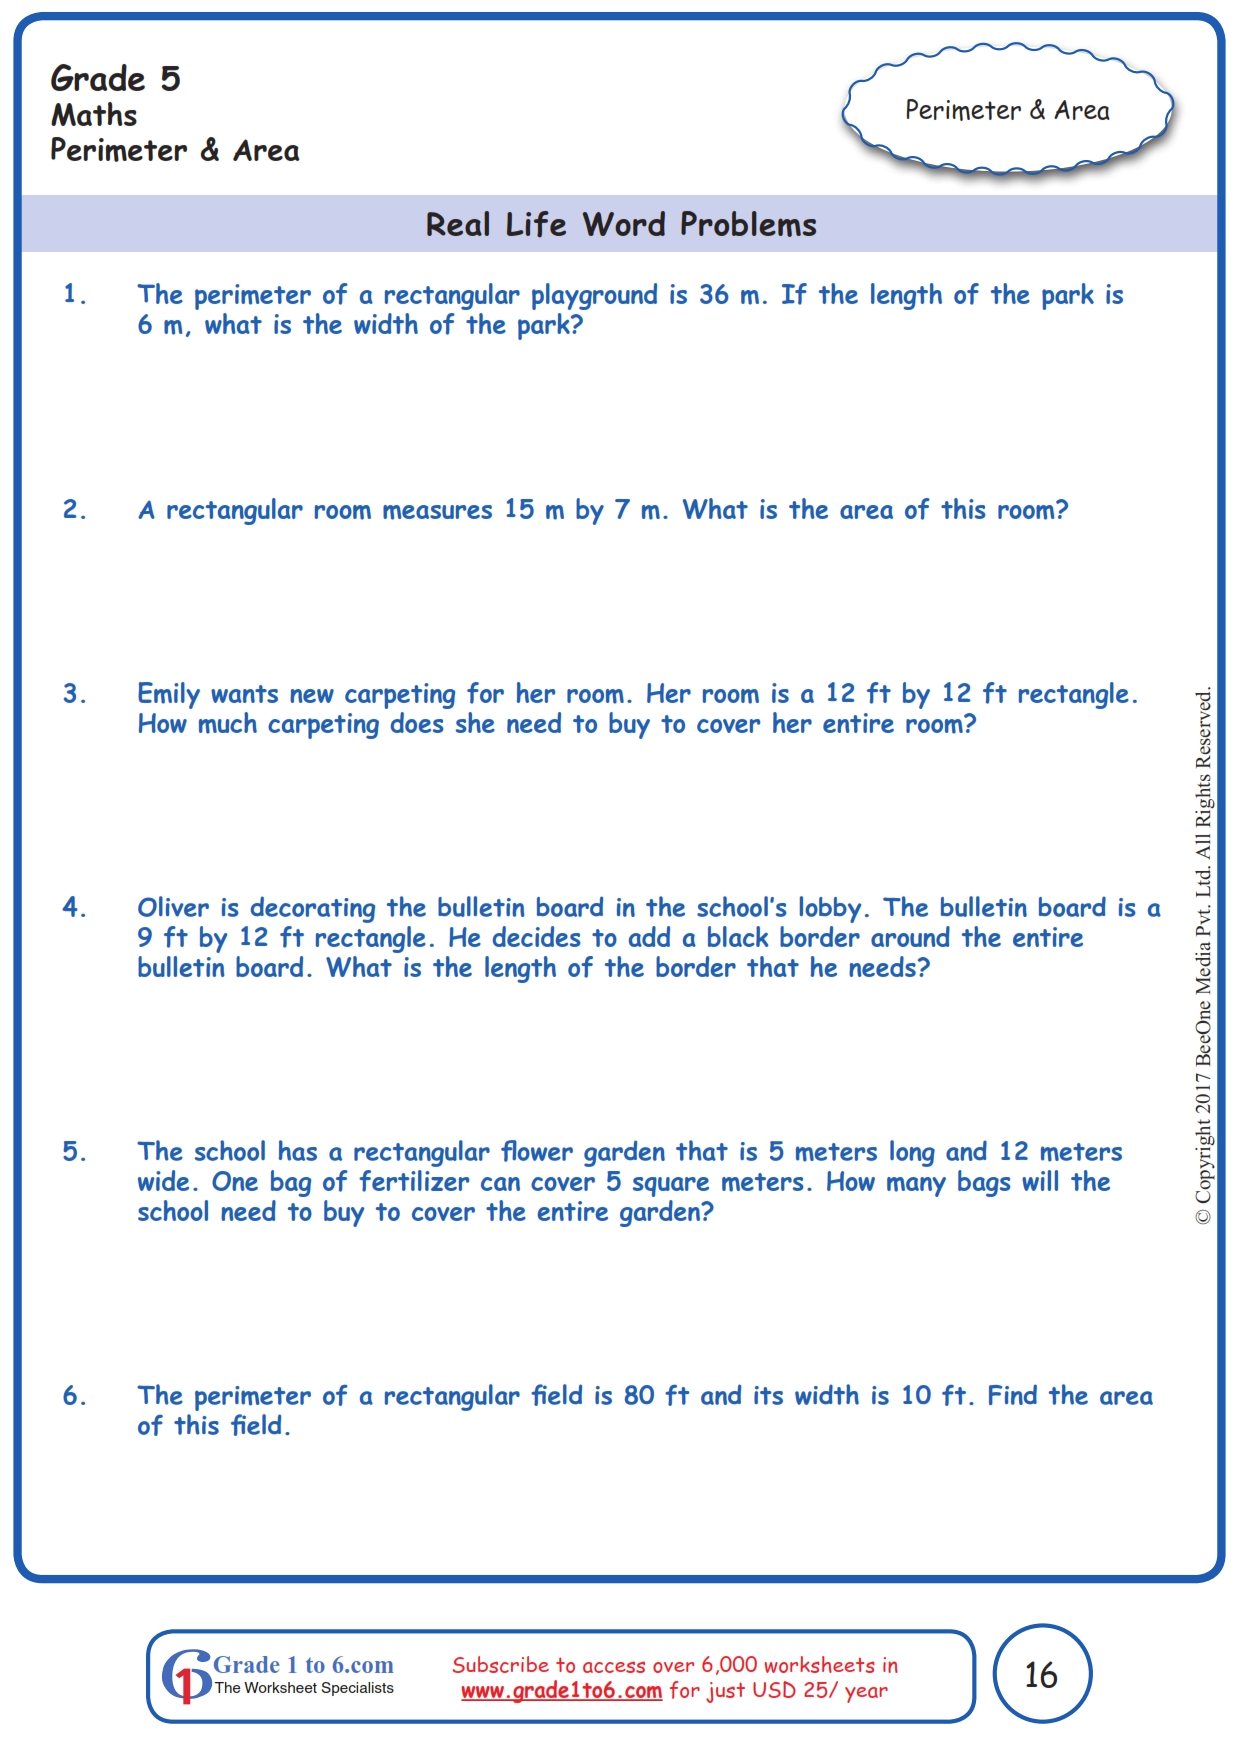 hight resolution of Area \u0026 Perimeter Word Problems  Grade 5  www.grade1to6.com